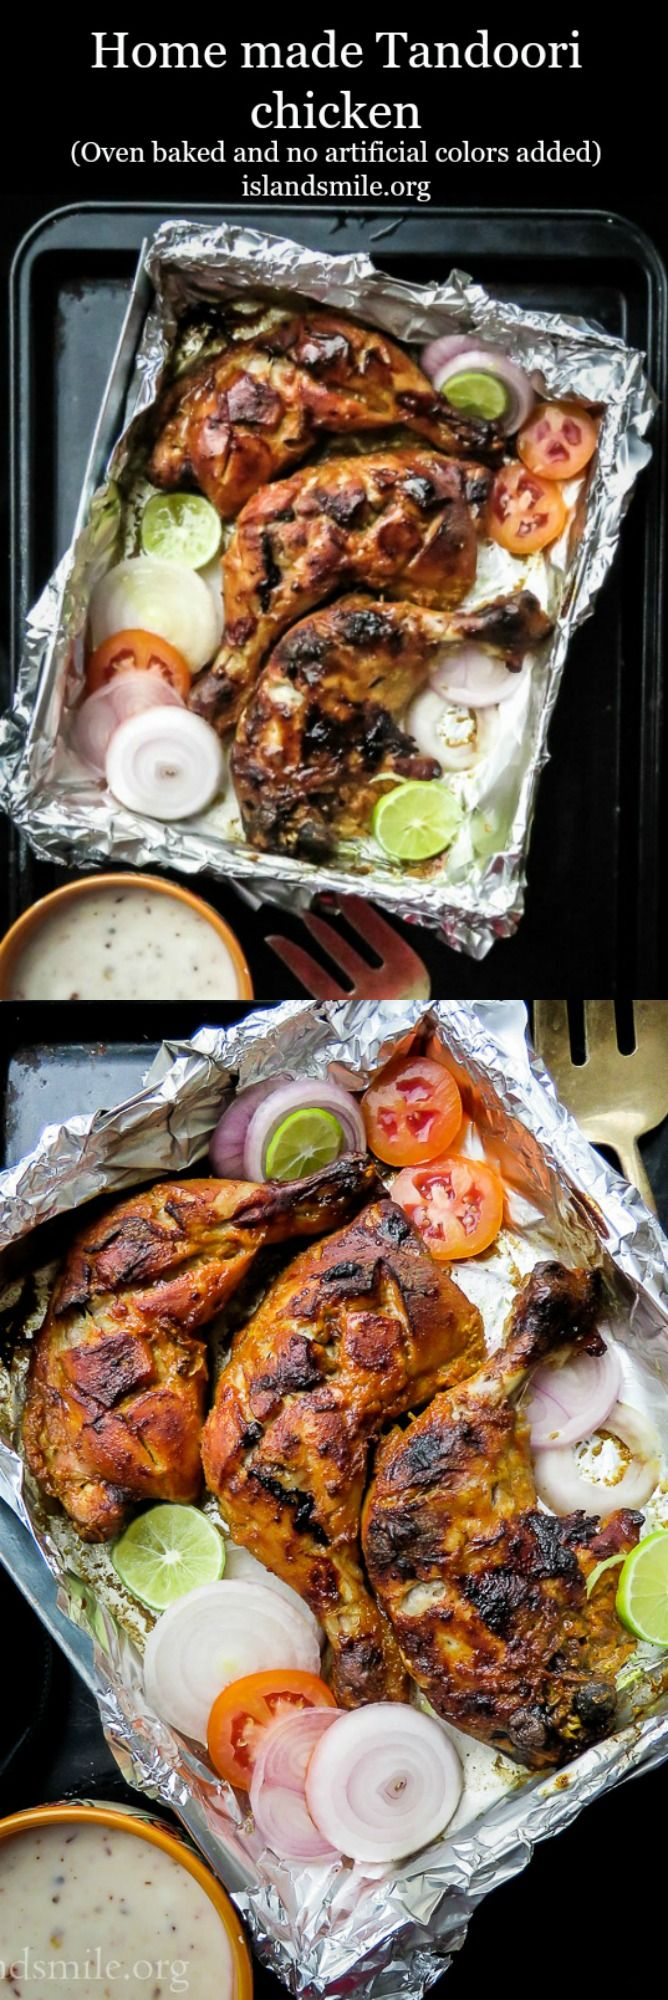 How to make Tandoori chicken at home(oven baked). Have your own Indian themed dinner from the comfort of your home with a Tandoori chicken taking center stage on your table.                                                                                                                                                                                 More